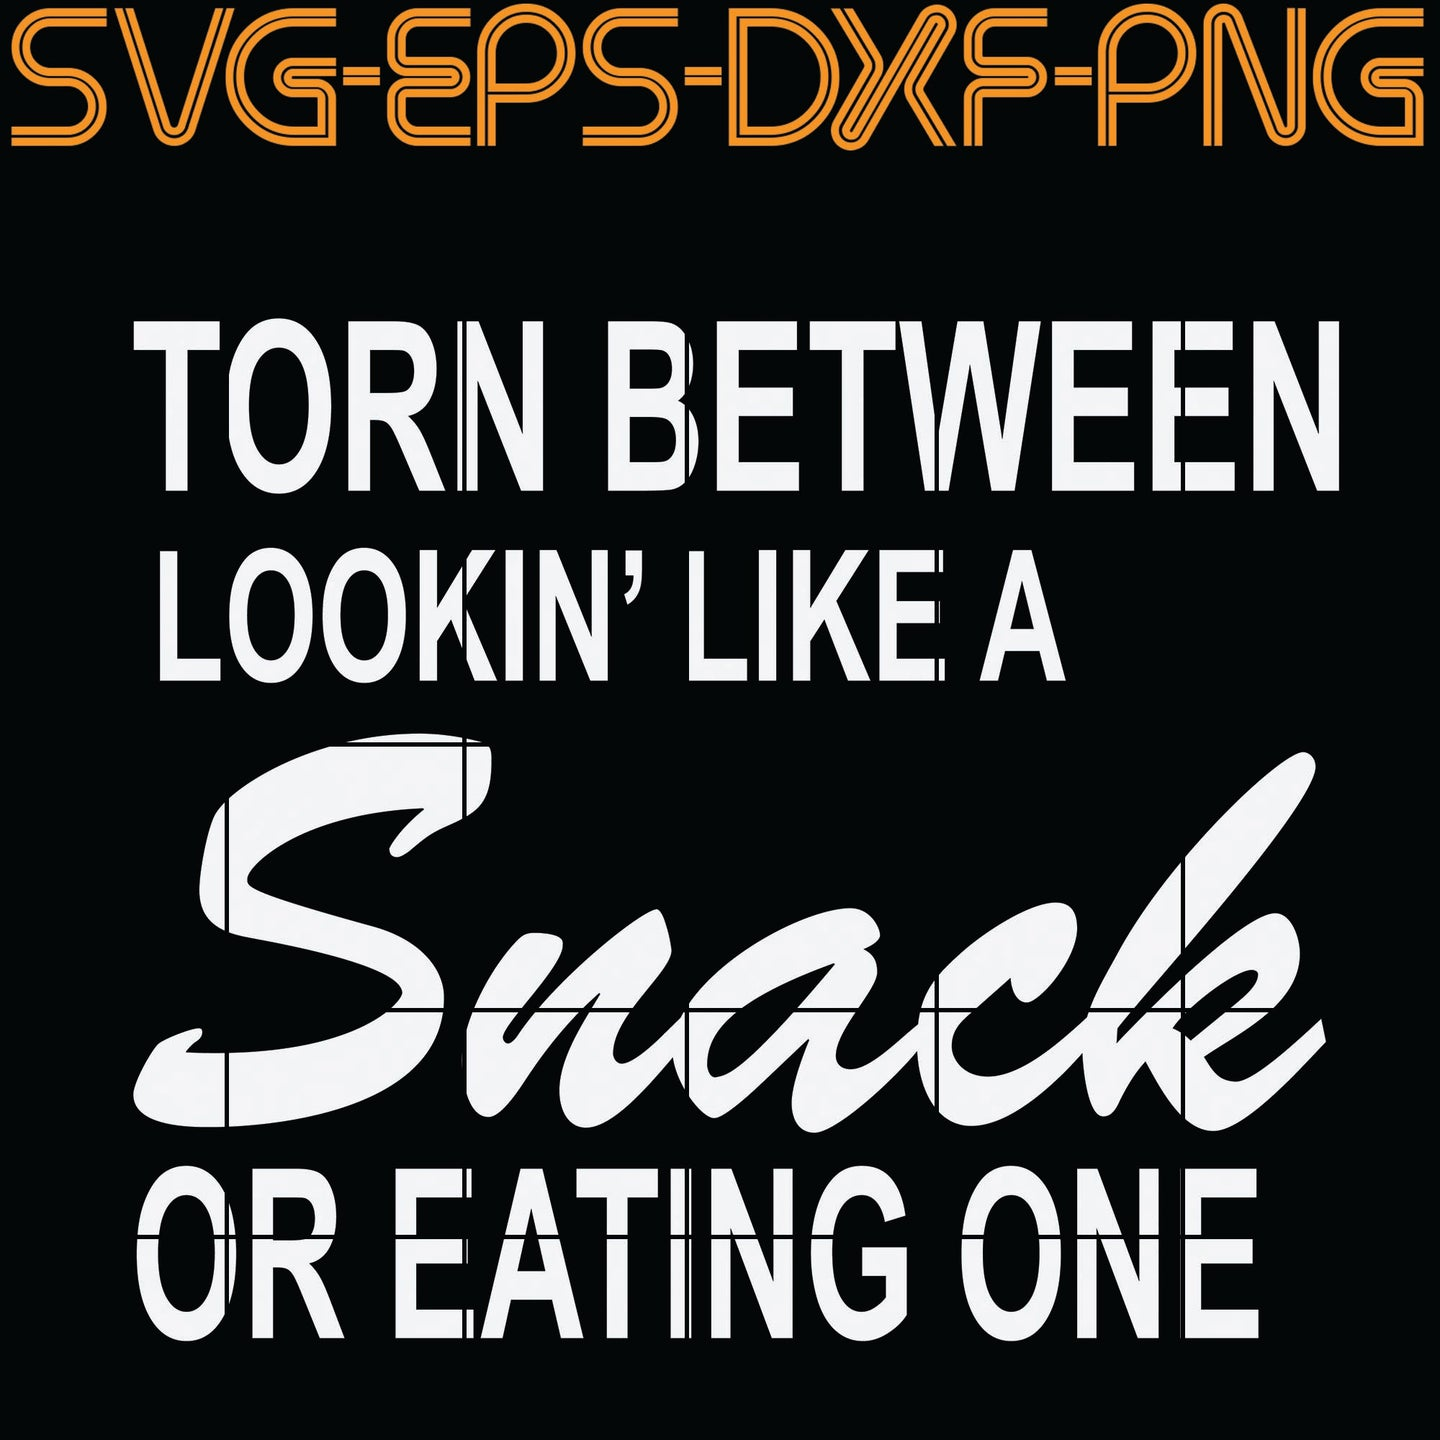 Torn between Lookin like a Snack Or Eating One,  Quotes, PNG, EPS, DXF, Digital Download